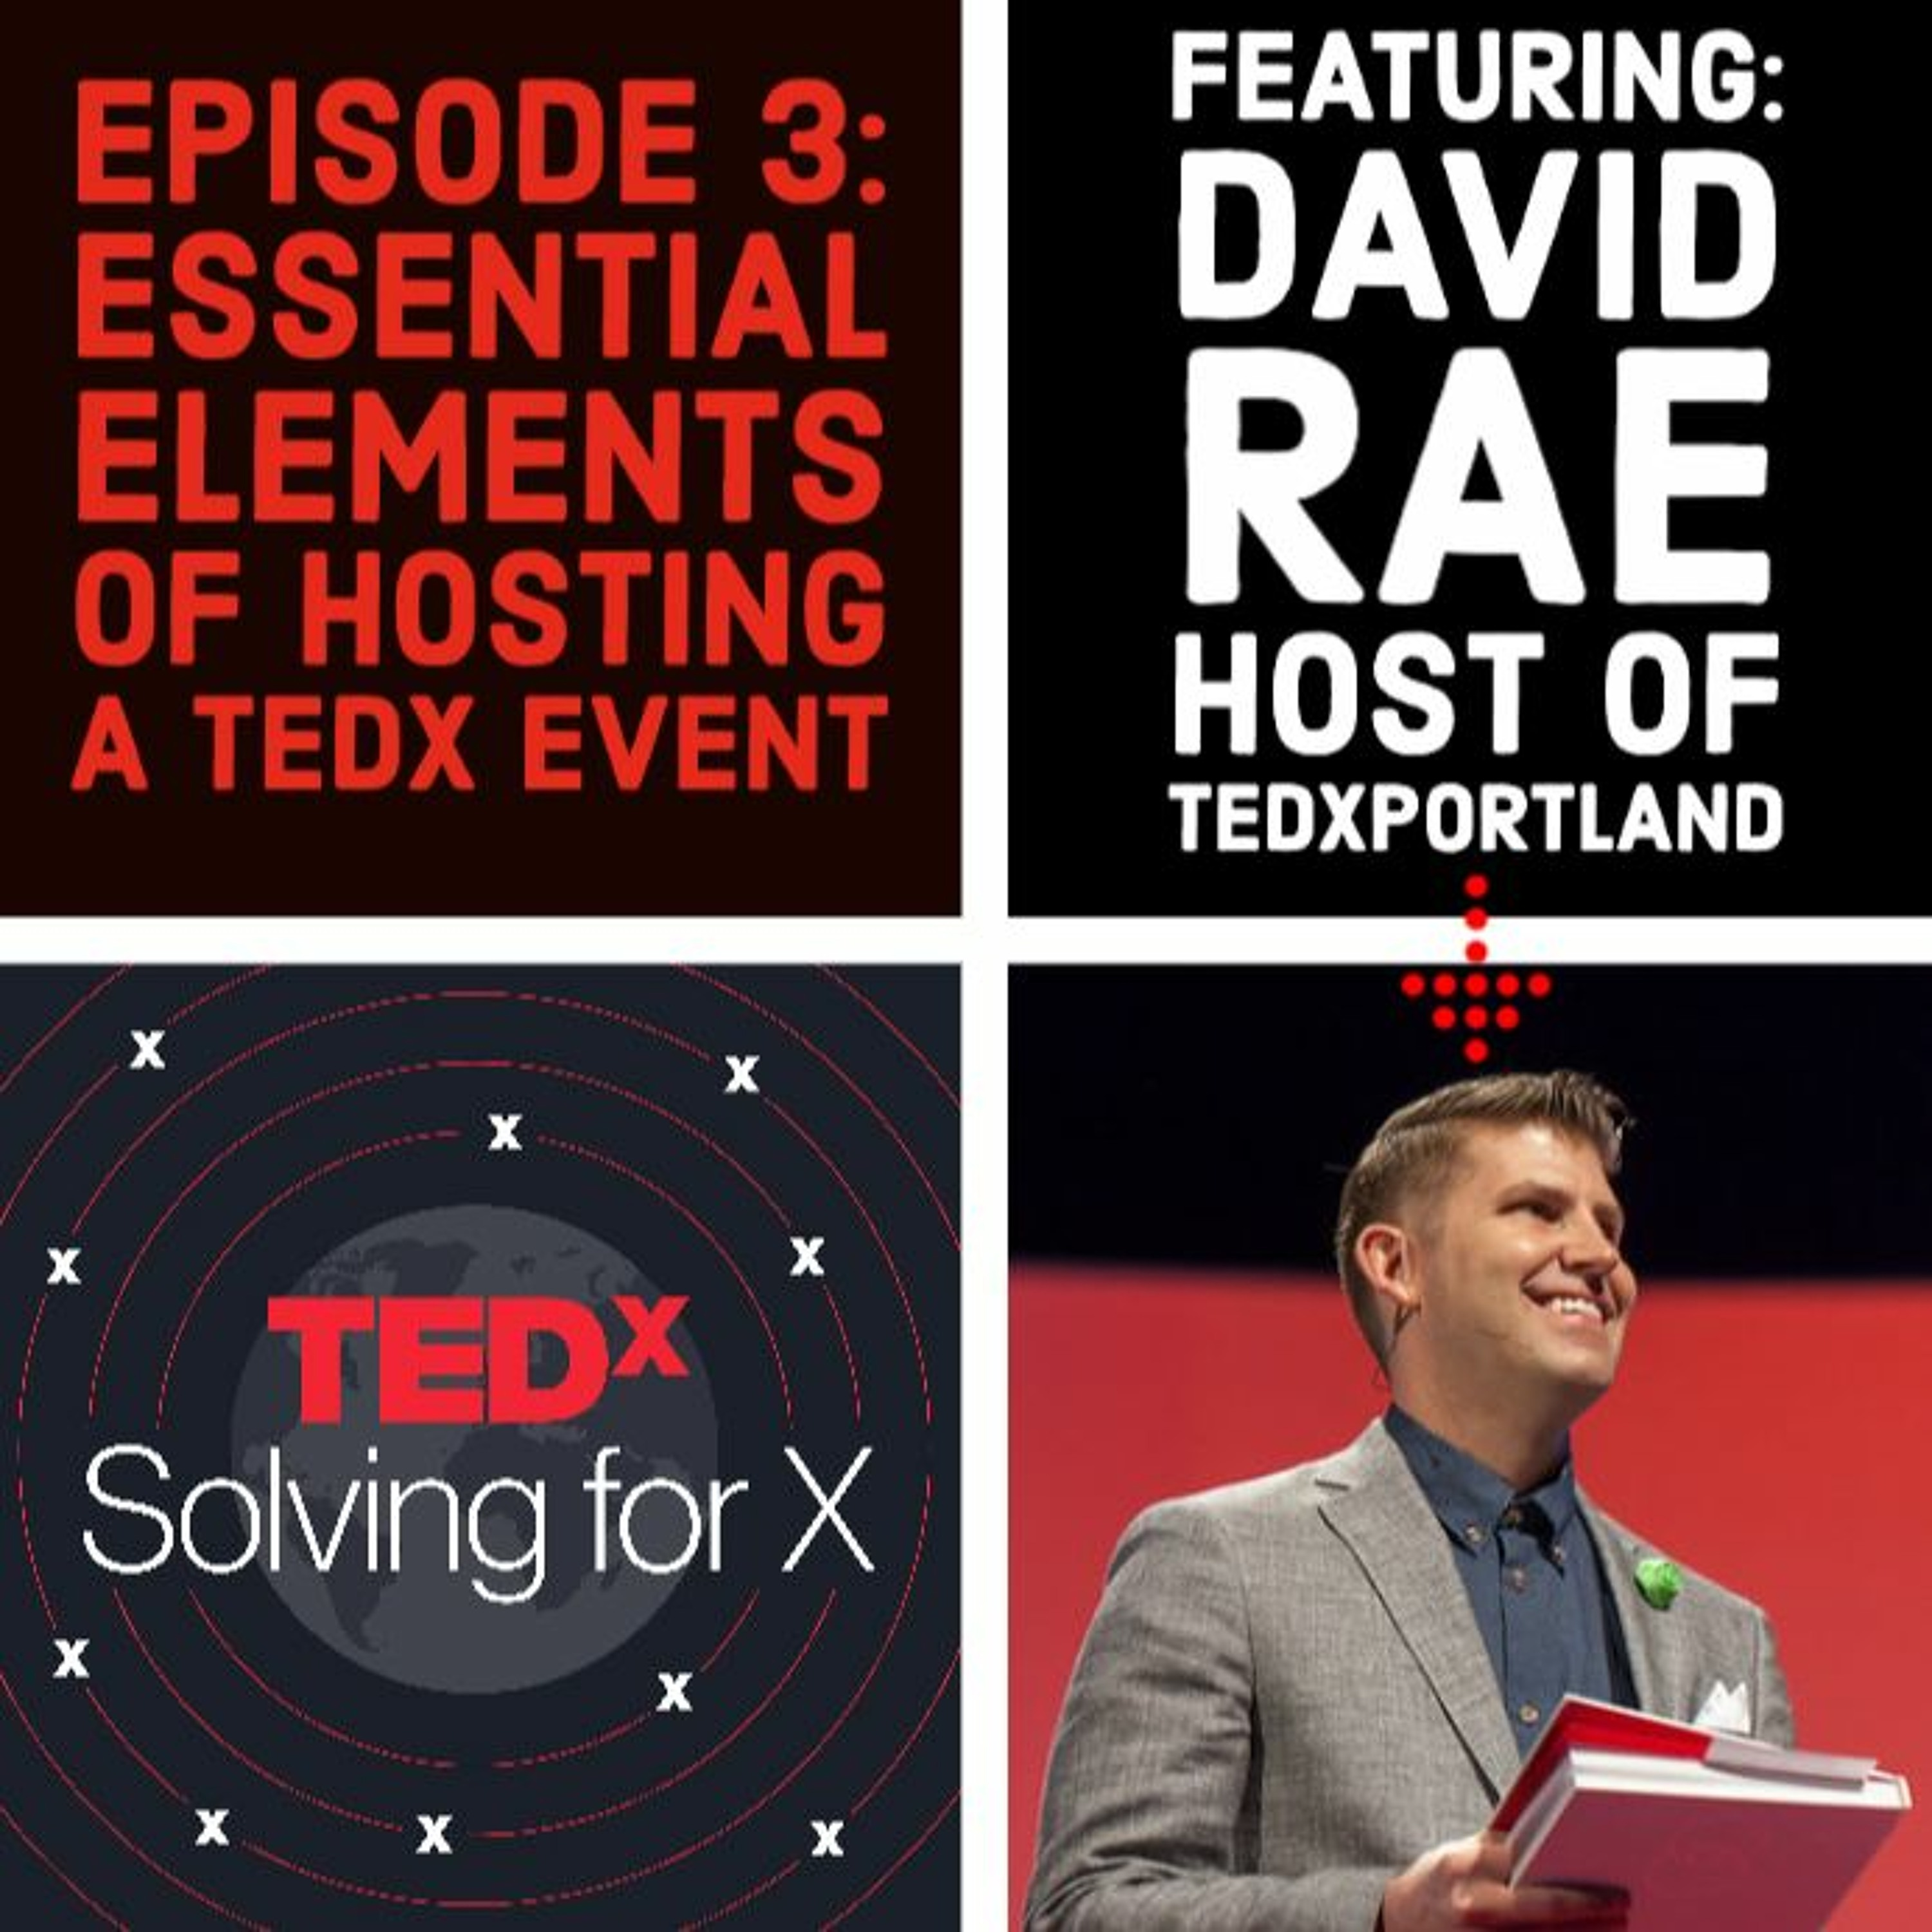 Host with passion — David Rae, TEDxPortland